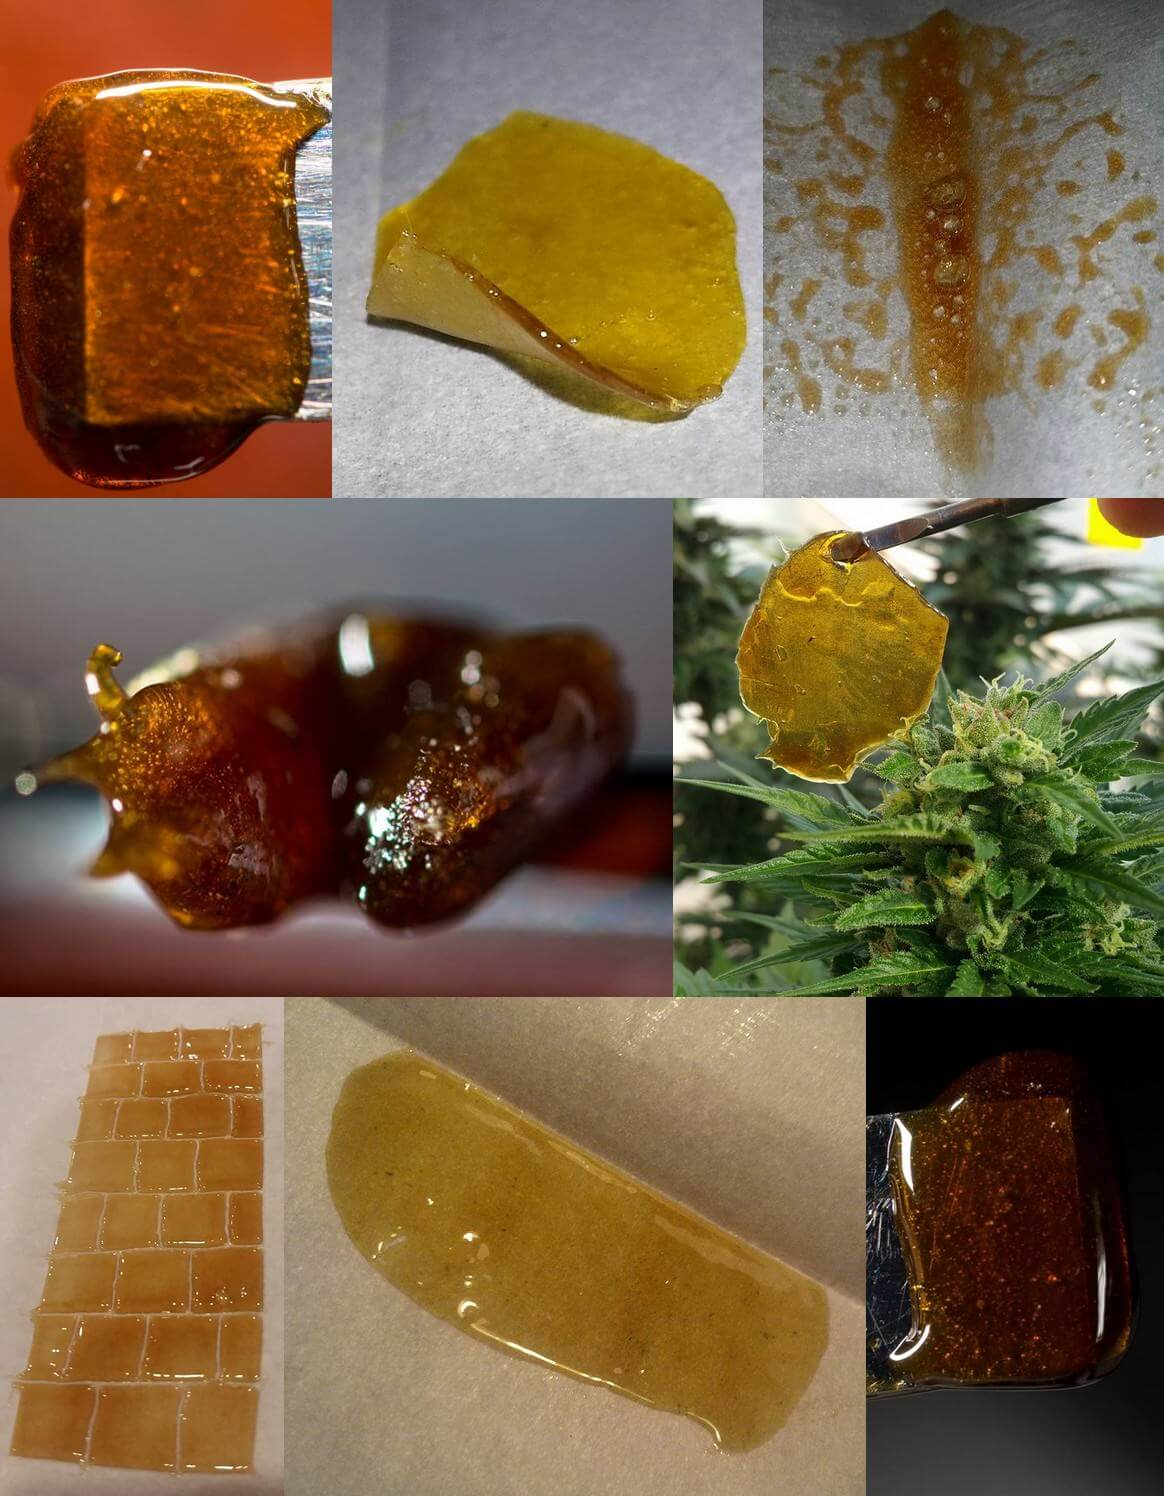 Extractions de cannabinoïdes Rosin Tech